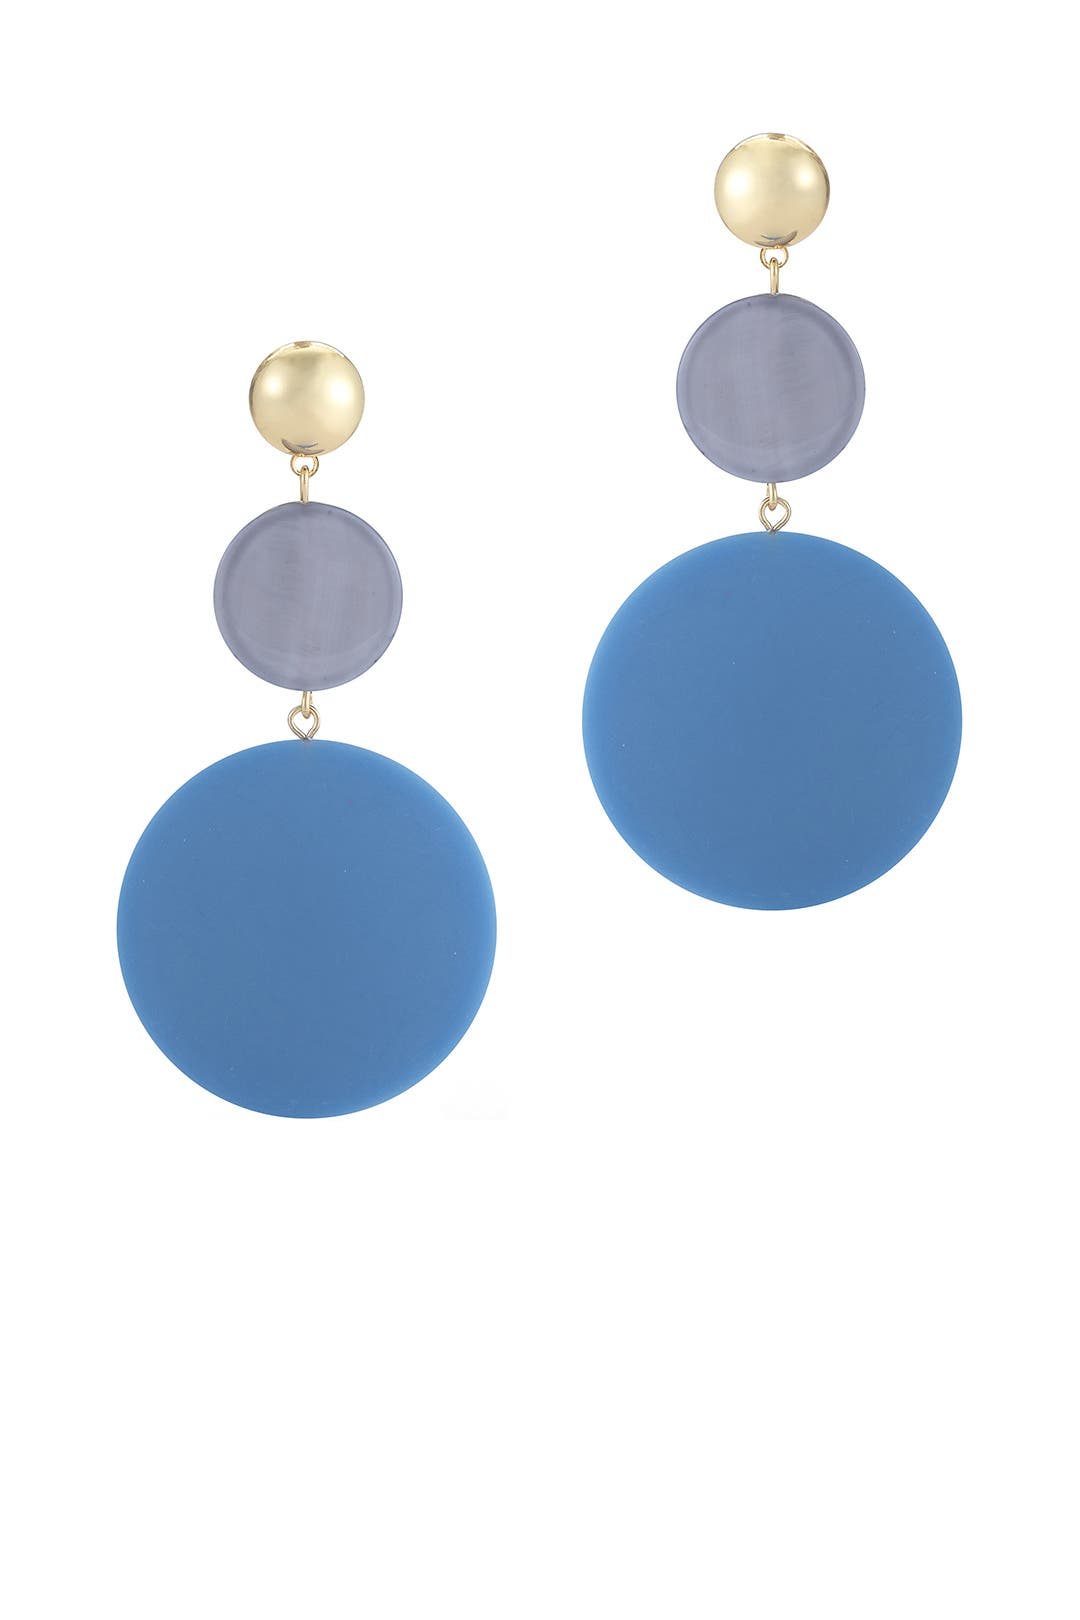 Blue Carter Earrings By Elizabeth And James Accessories For $20  Rent The  Runway